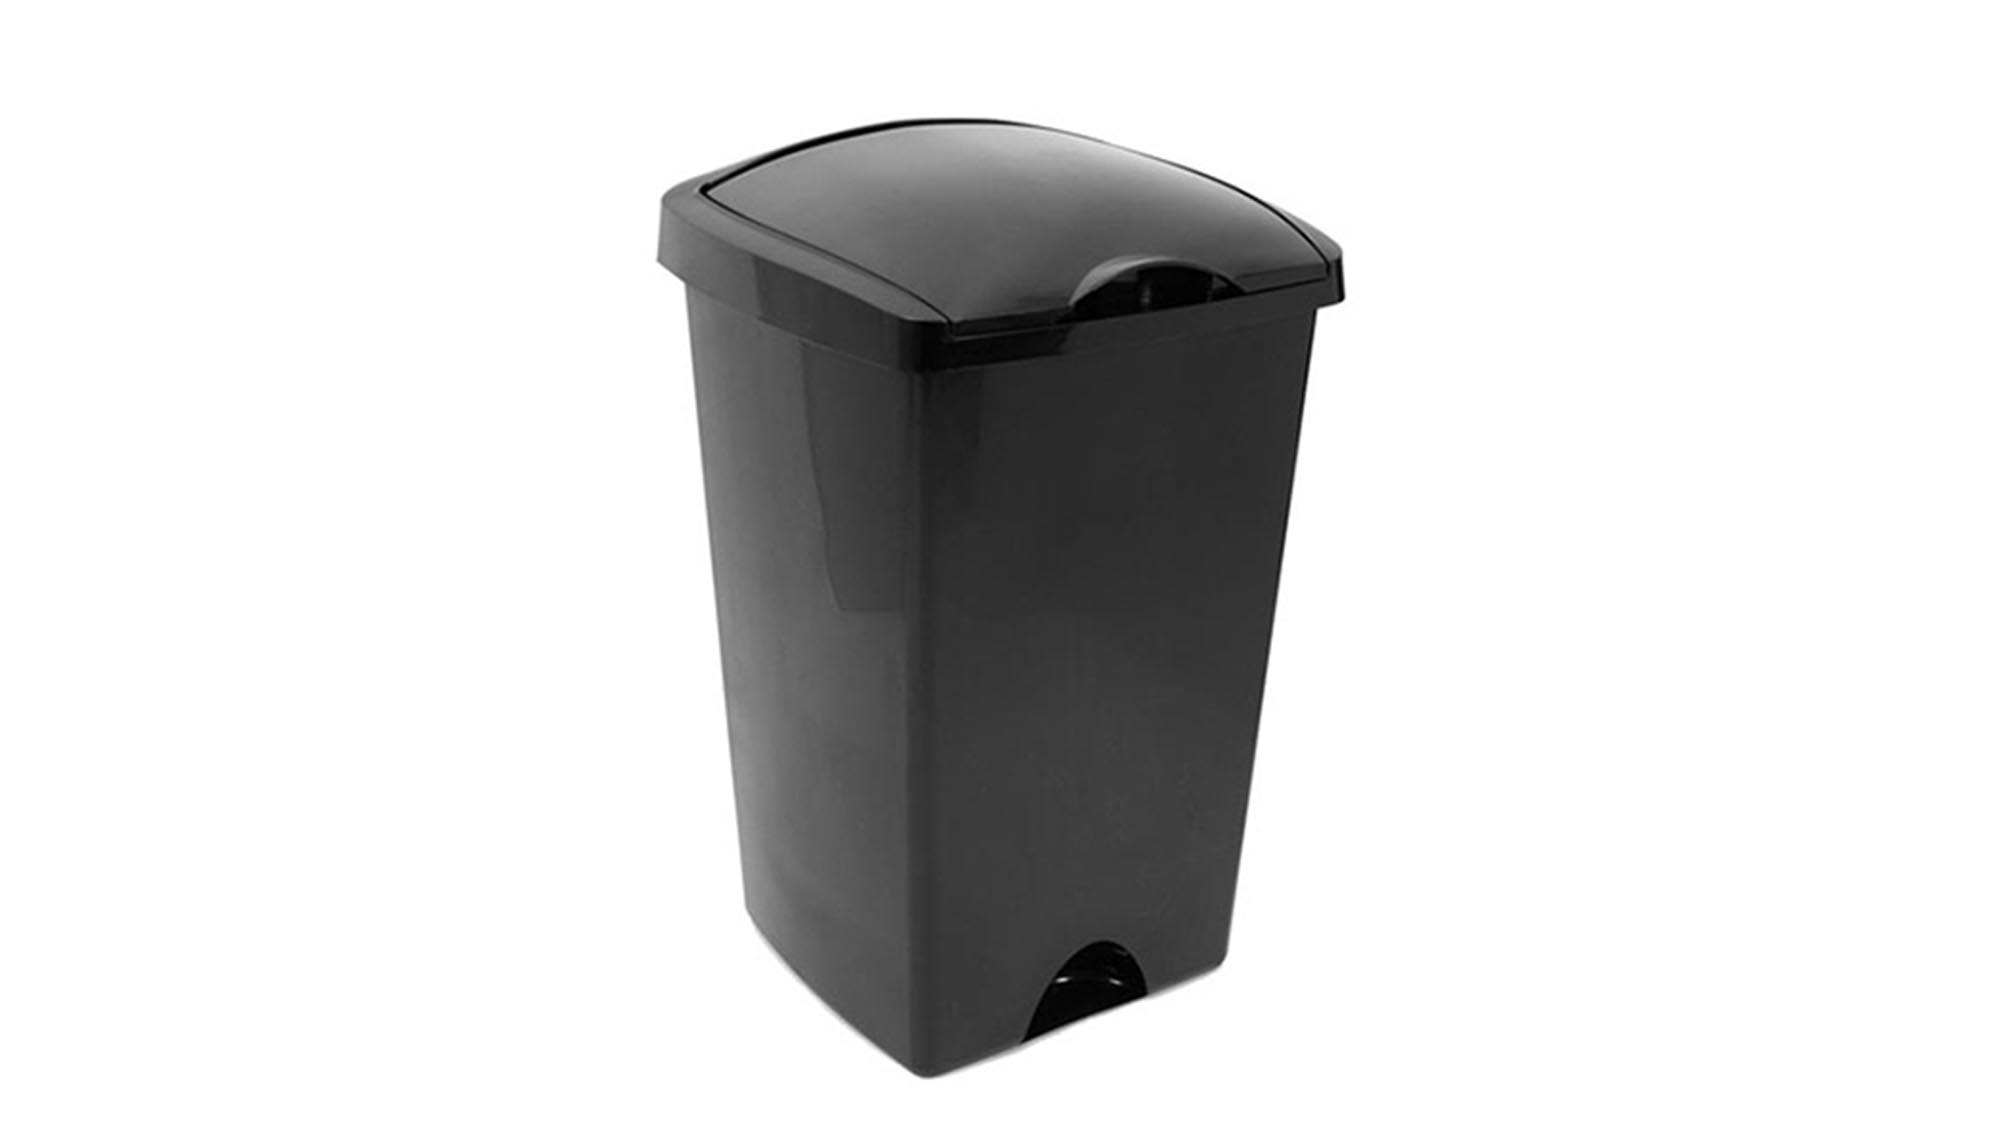 This Cheap As Chips Flip Top Plastic Bin Is A Fabulous No Frills  Budget Buy. And While It Might Look Like A Zillion Other Ones Like It On  The Market, ...